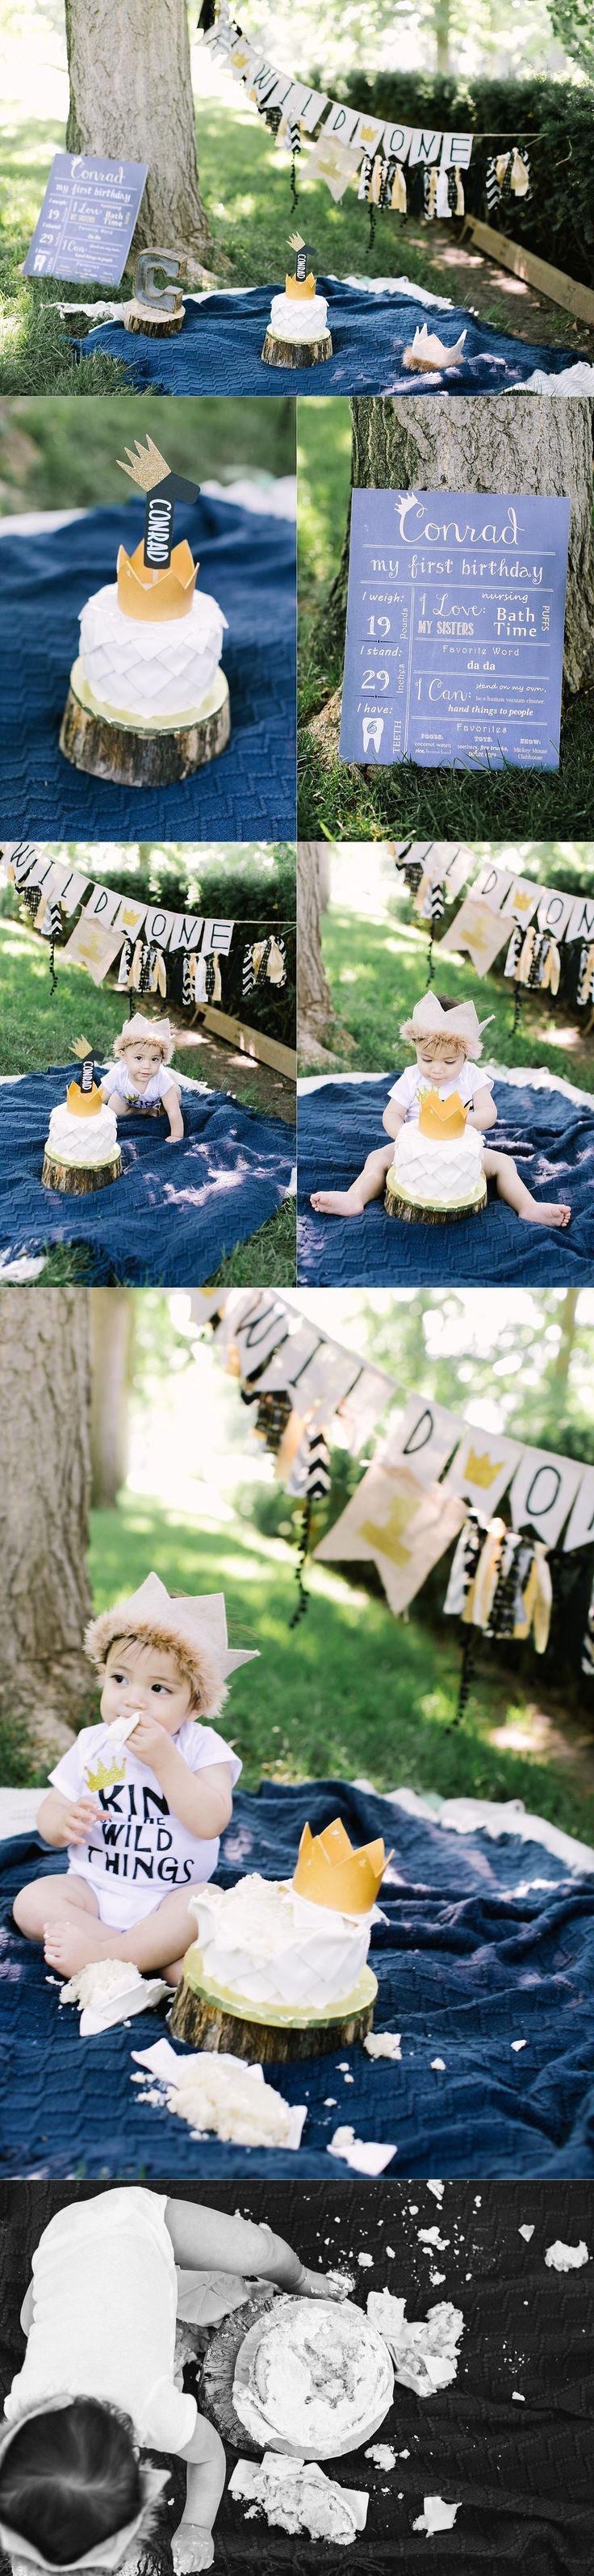 Where the wild things are cake smash first birthday theme! So stinkin cute!